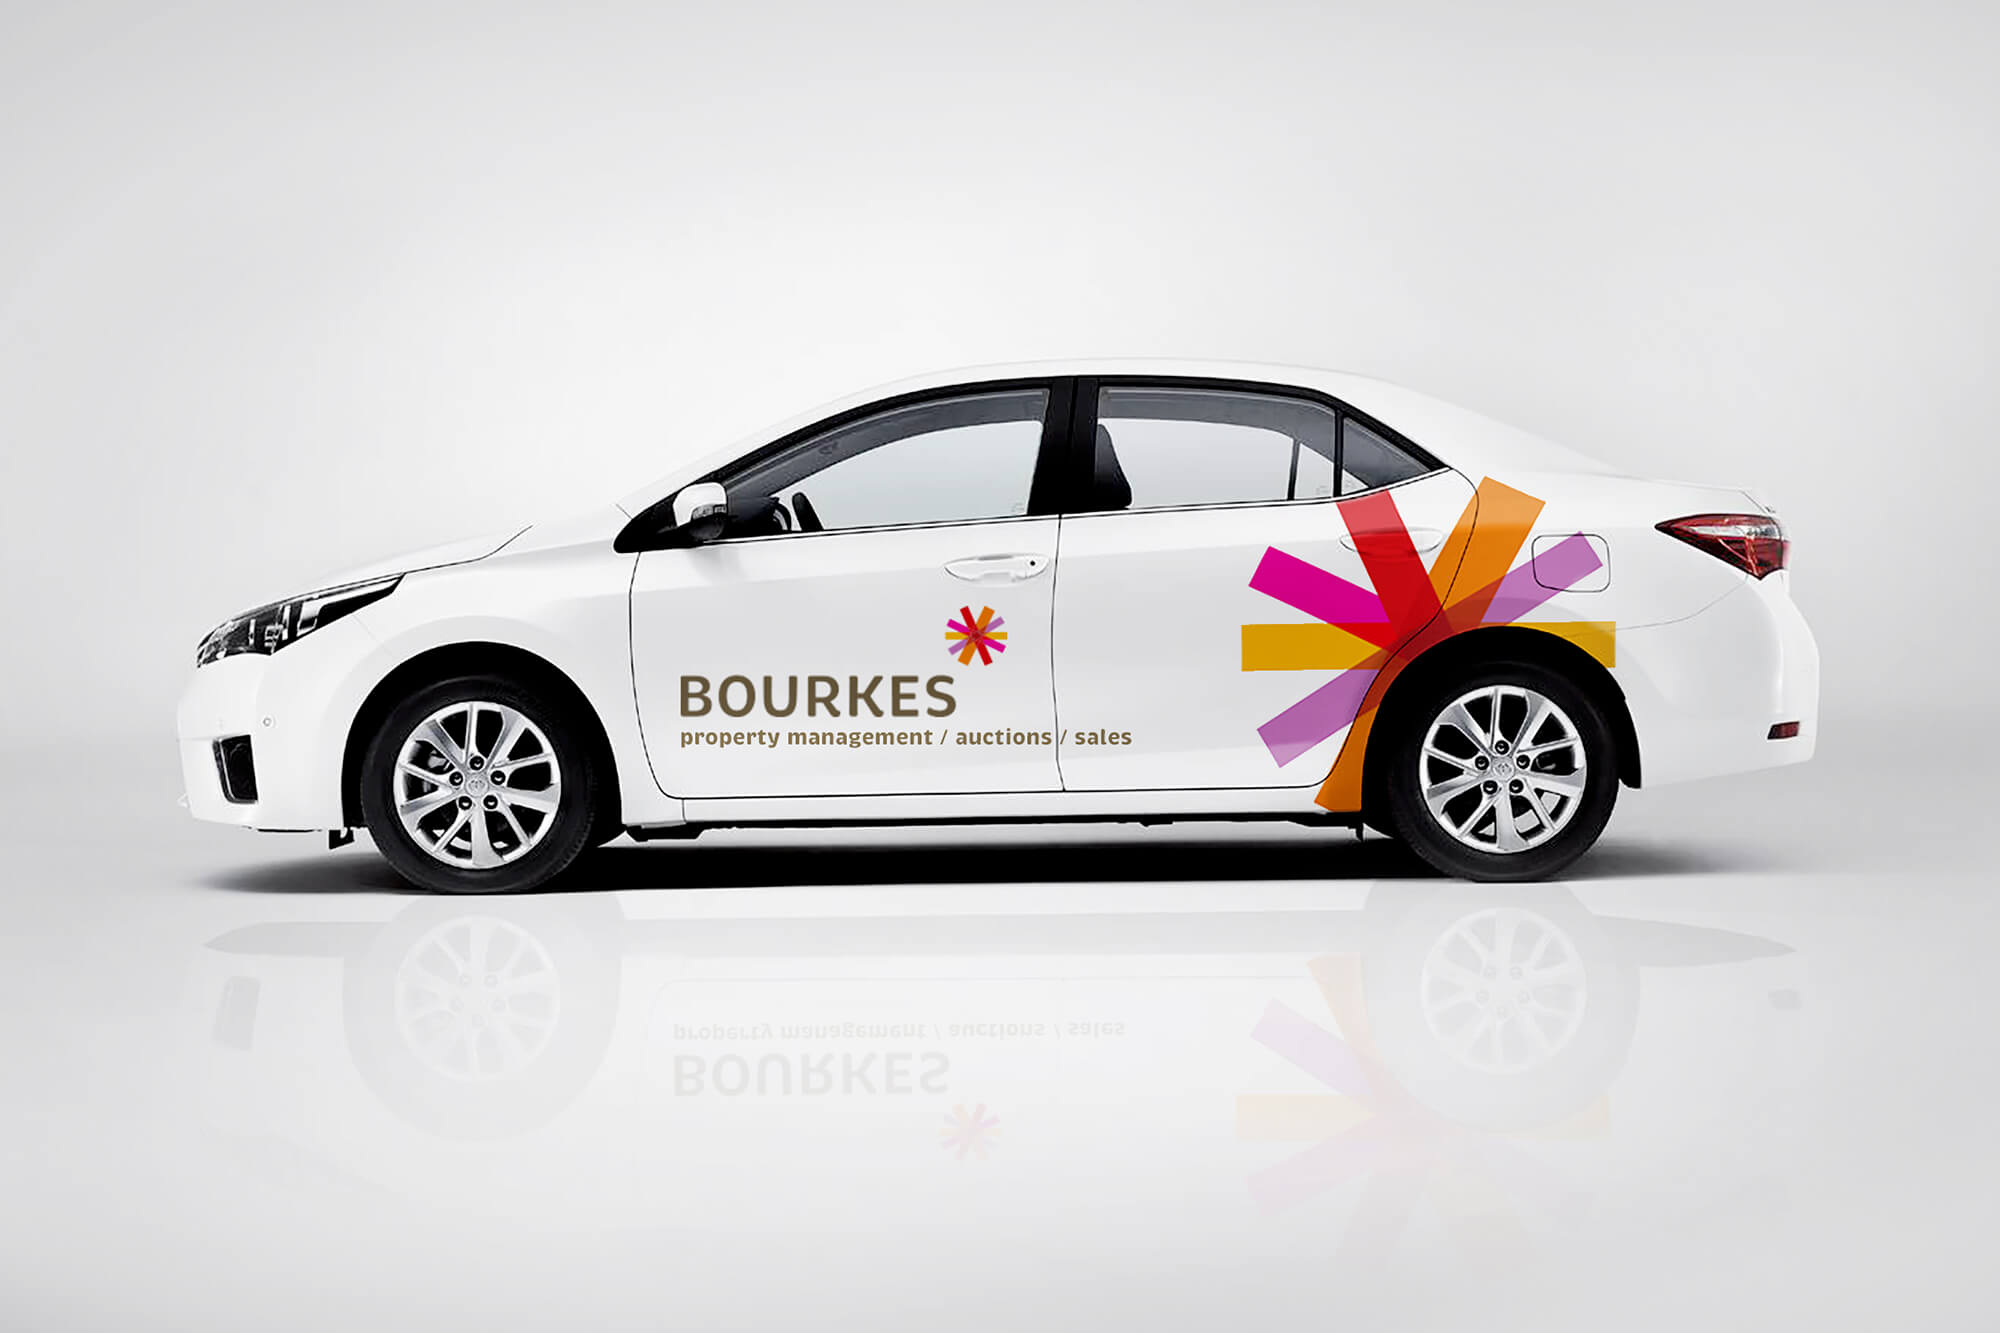 bourkes-realestate-vehicle